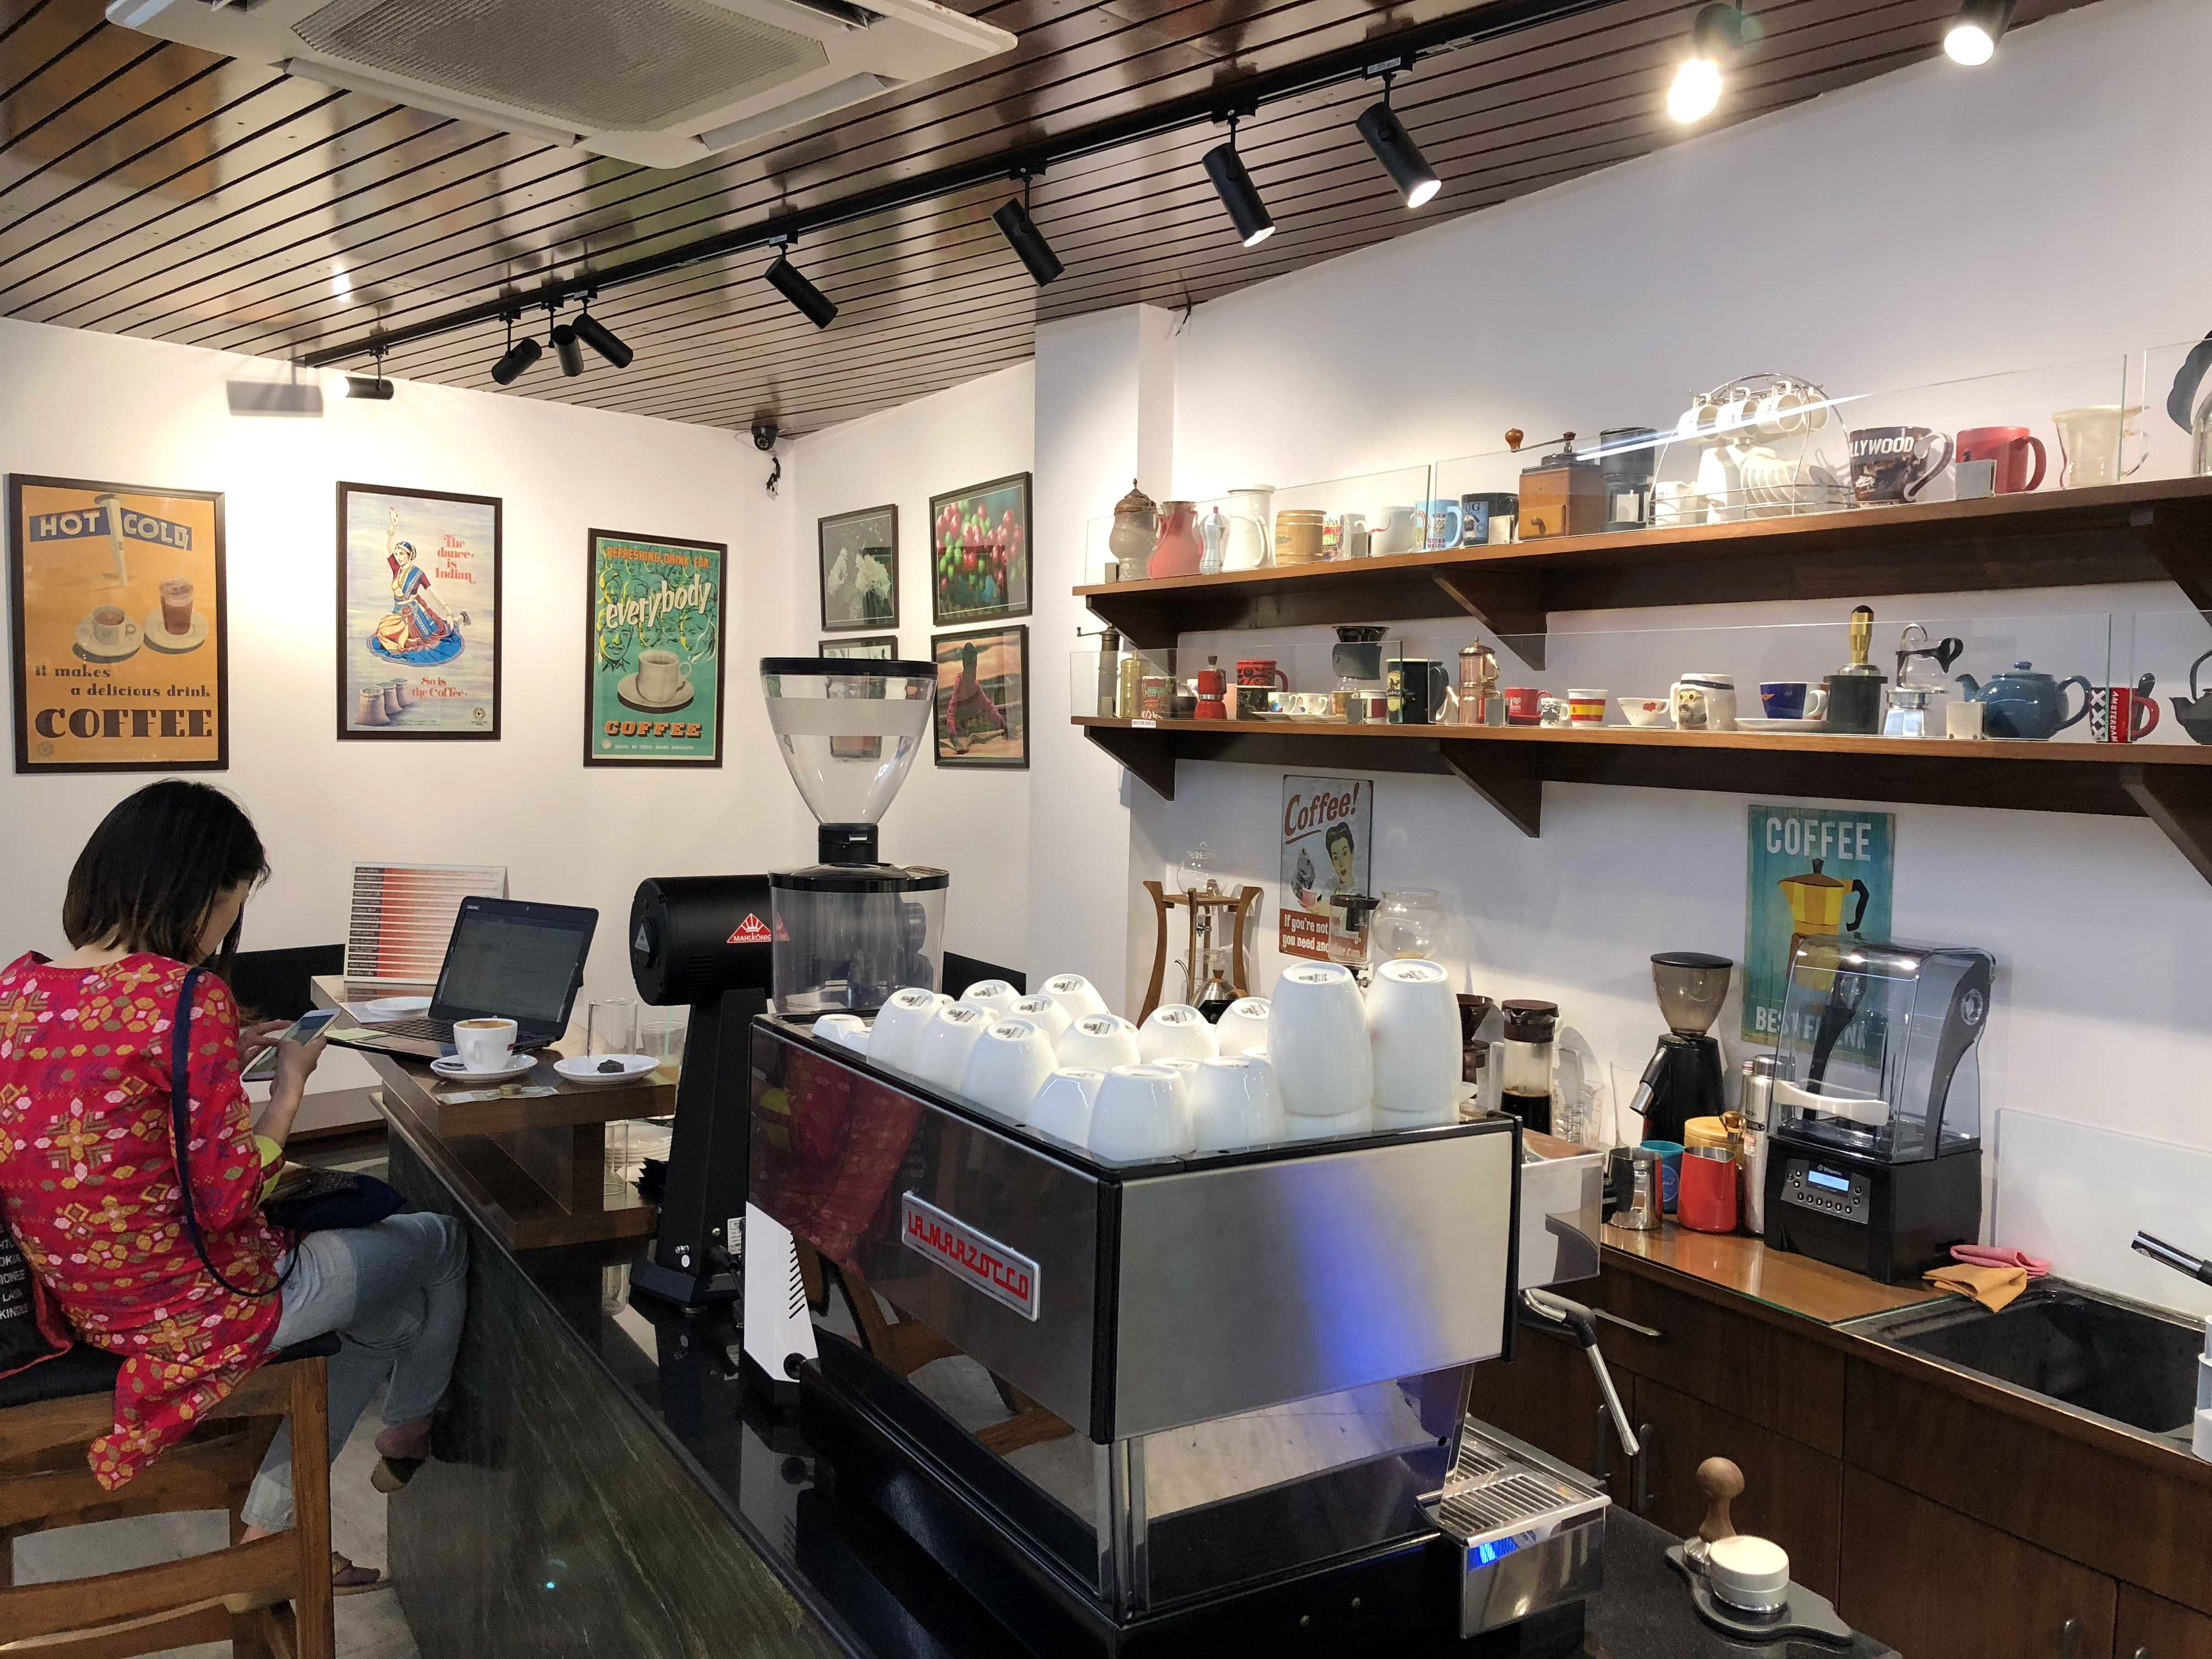 Like Coffee A Latte? Get Yourself A Cup {Or Two} Of Chinos From This Coffee Cafe & Bar